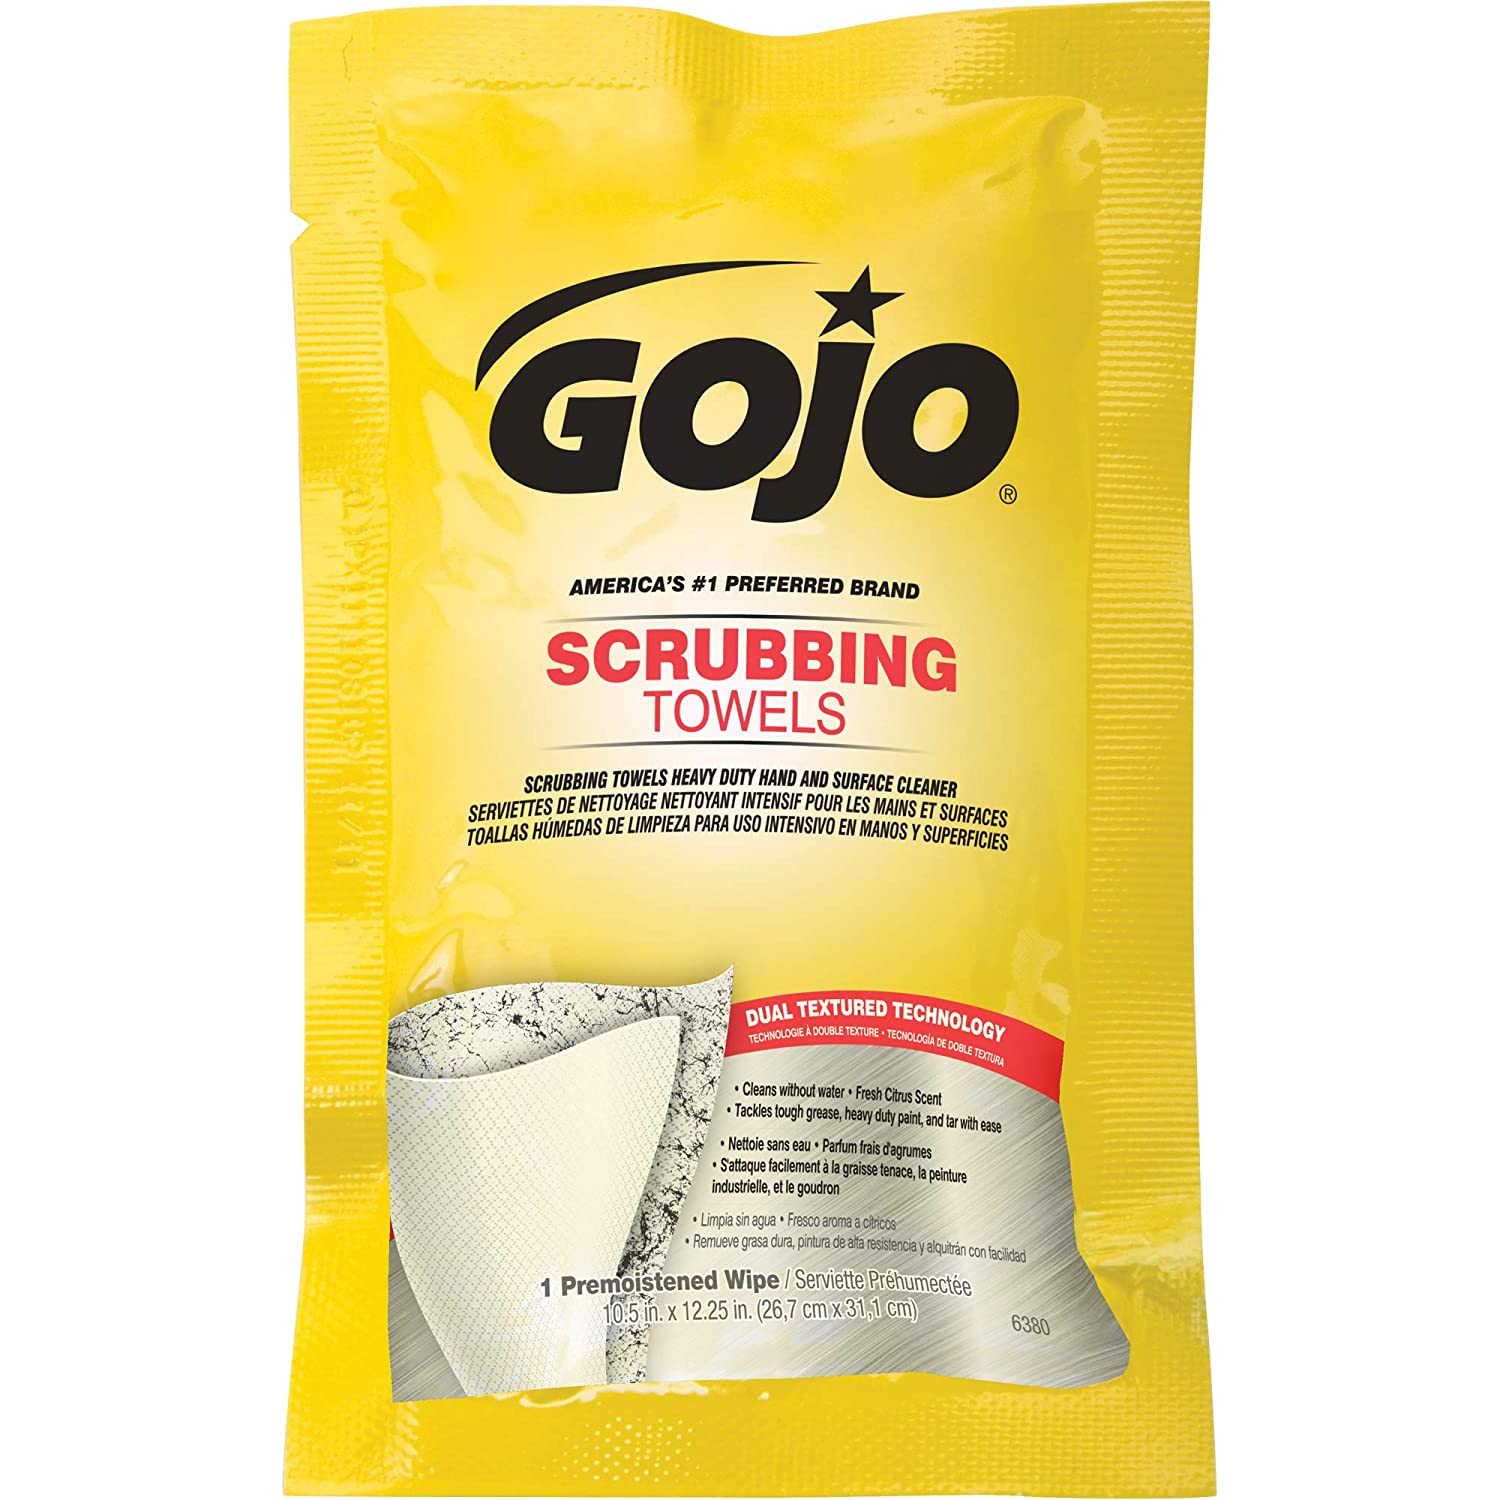 Amazon.com: Gojo Scrubbing Towels 6380-04, Display Carton, Individually Wrapped Extra-Large Textured Wet Towels - 80 Count: Automotive